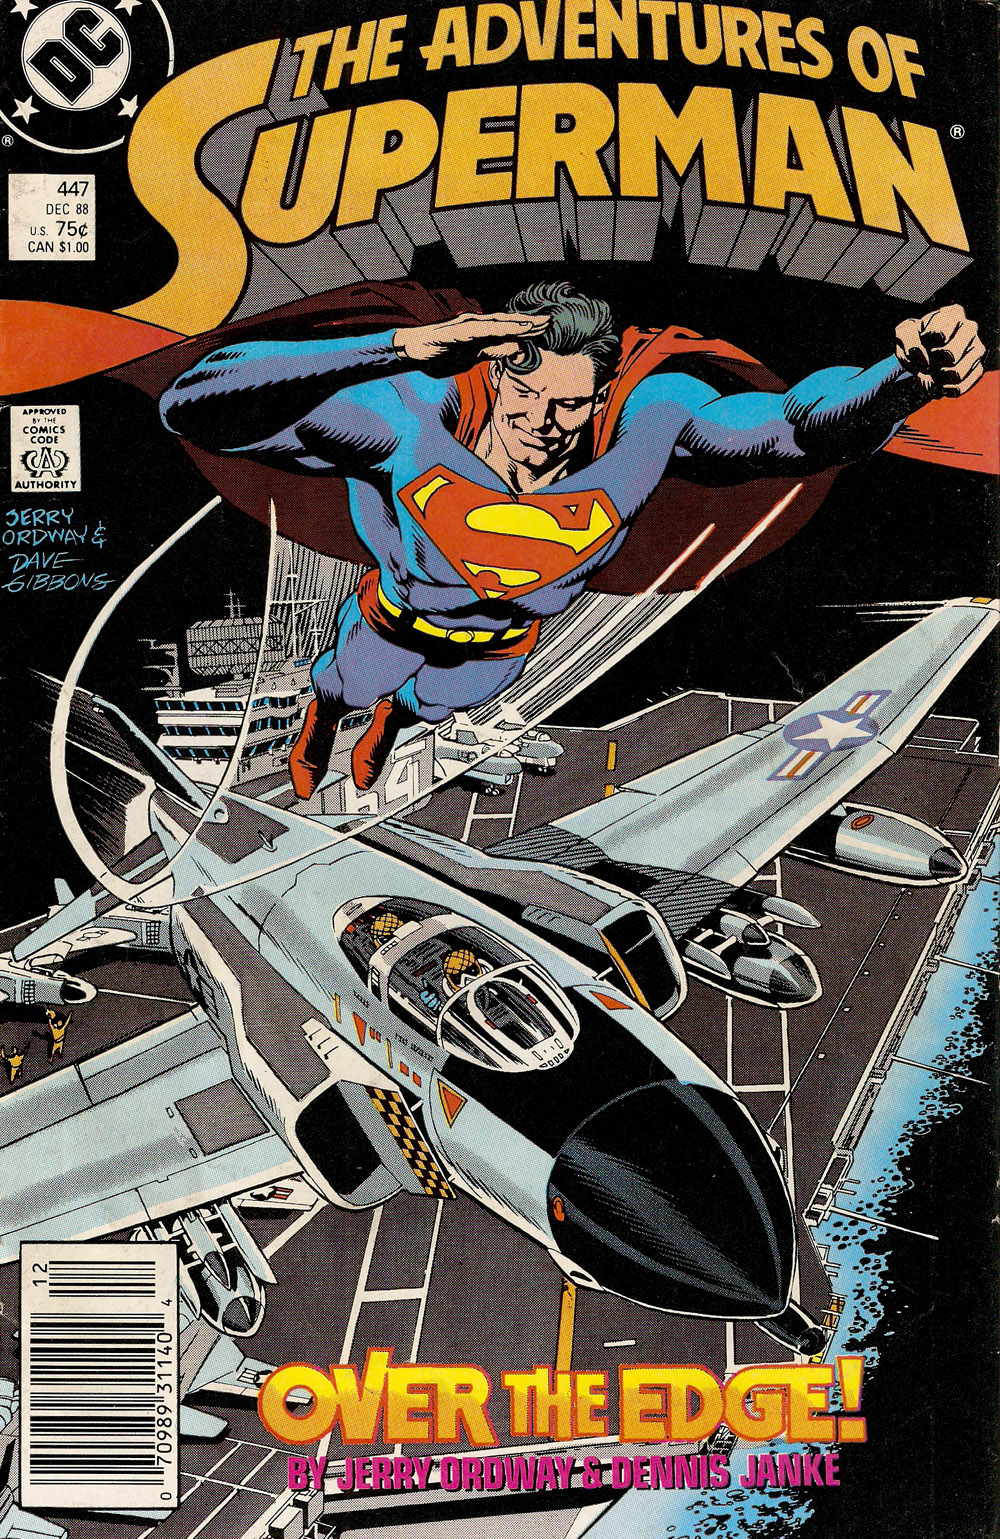 Adventures of Superman #447